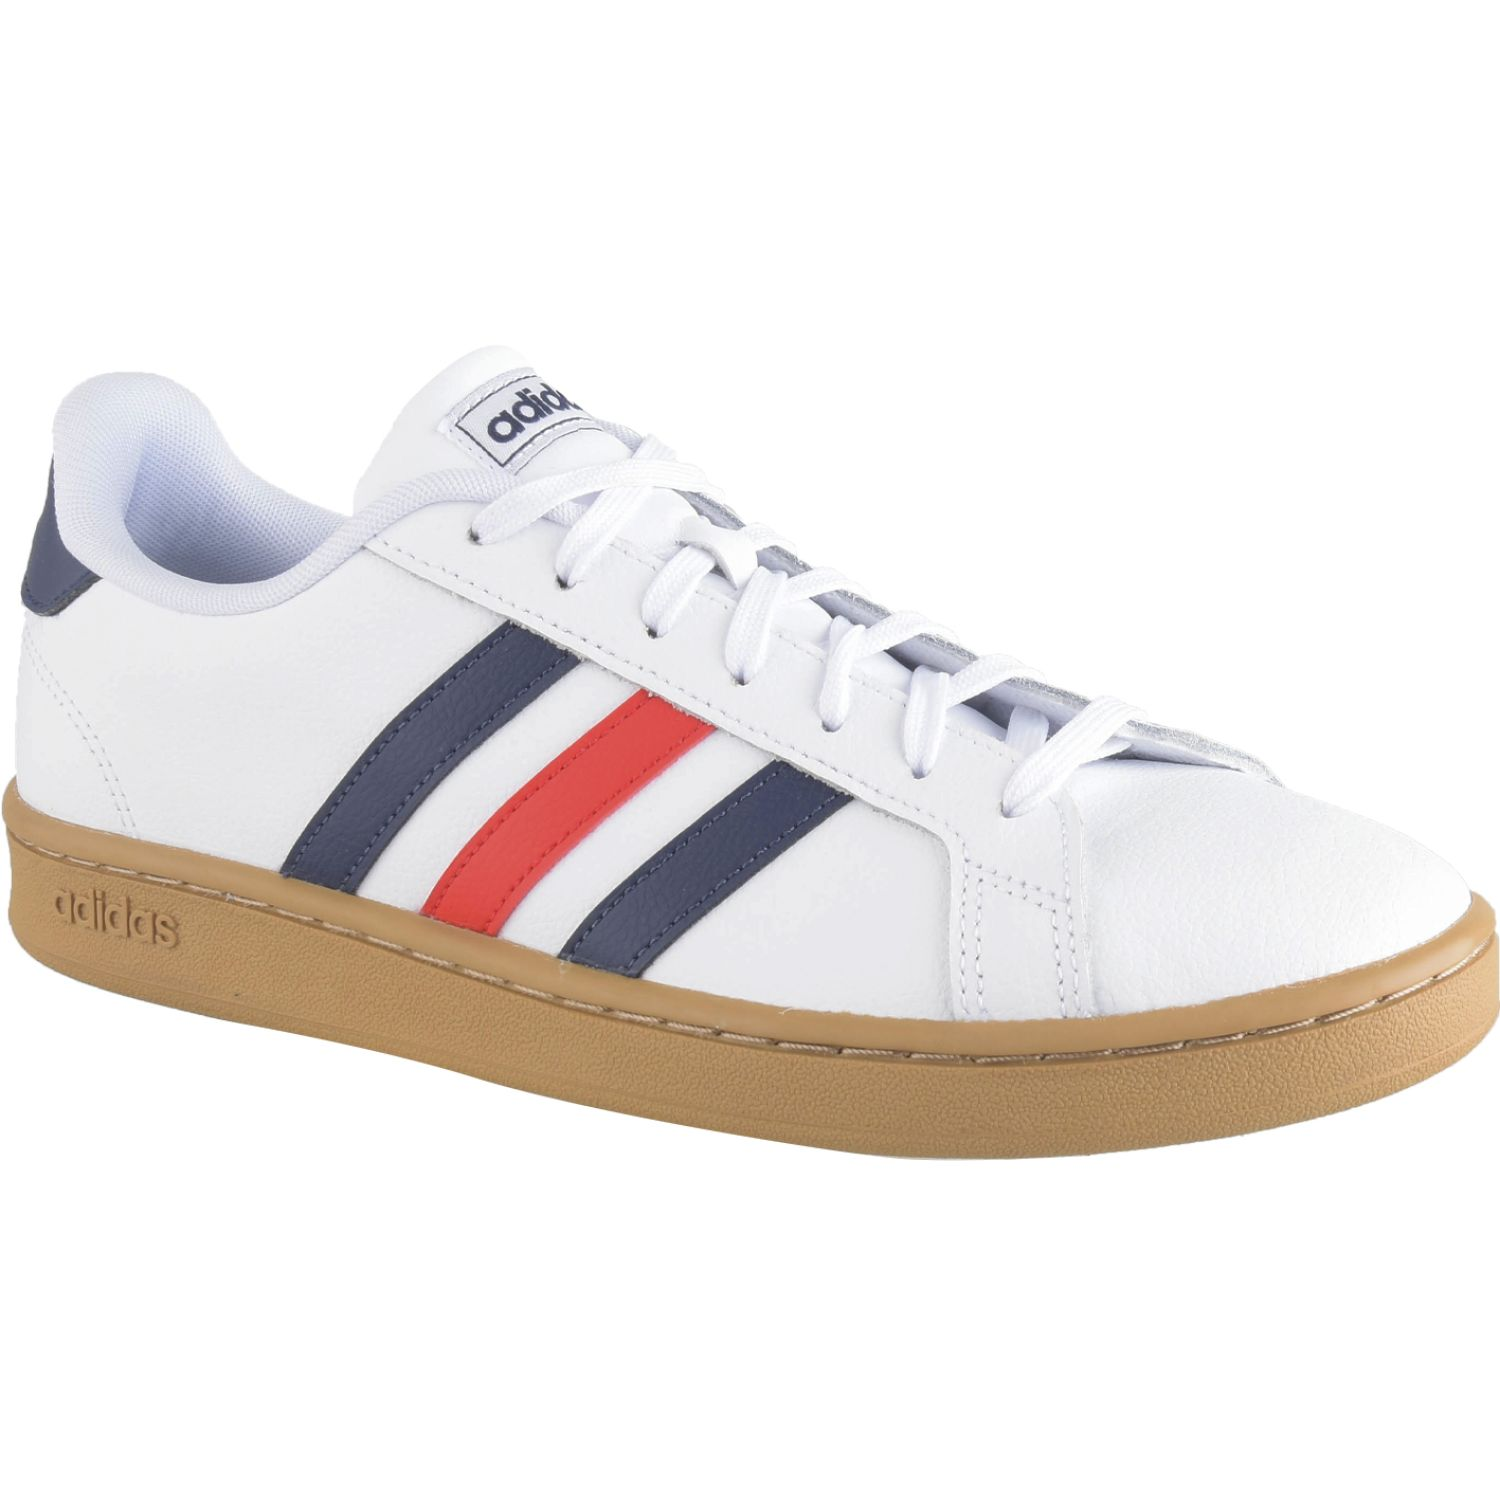 Adidas grand court Blanco / Navy Tennis & Deportes con Raqueta